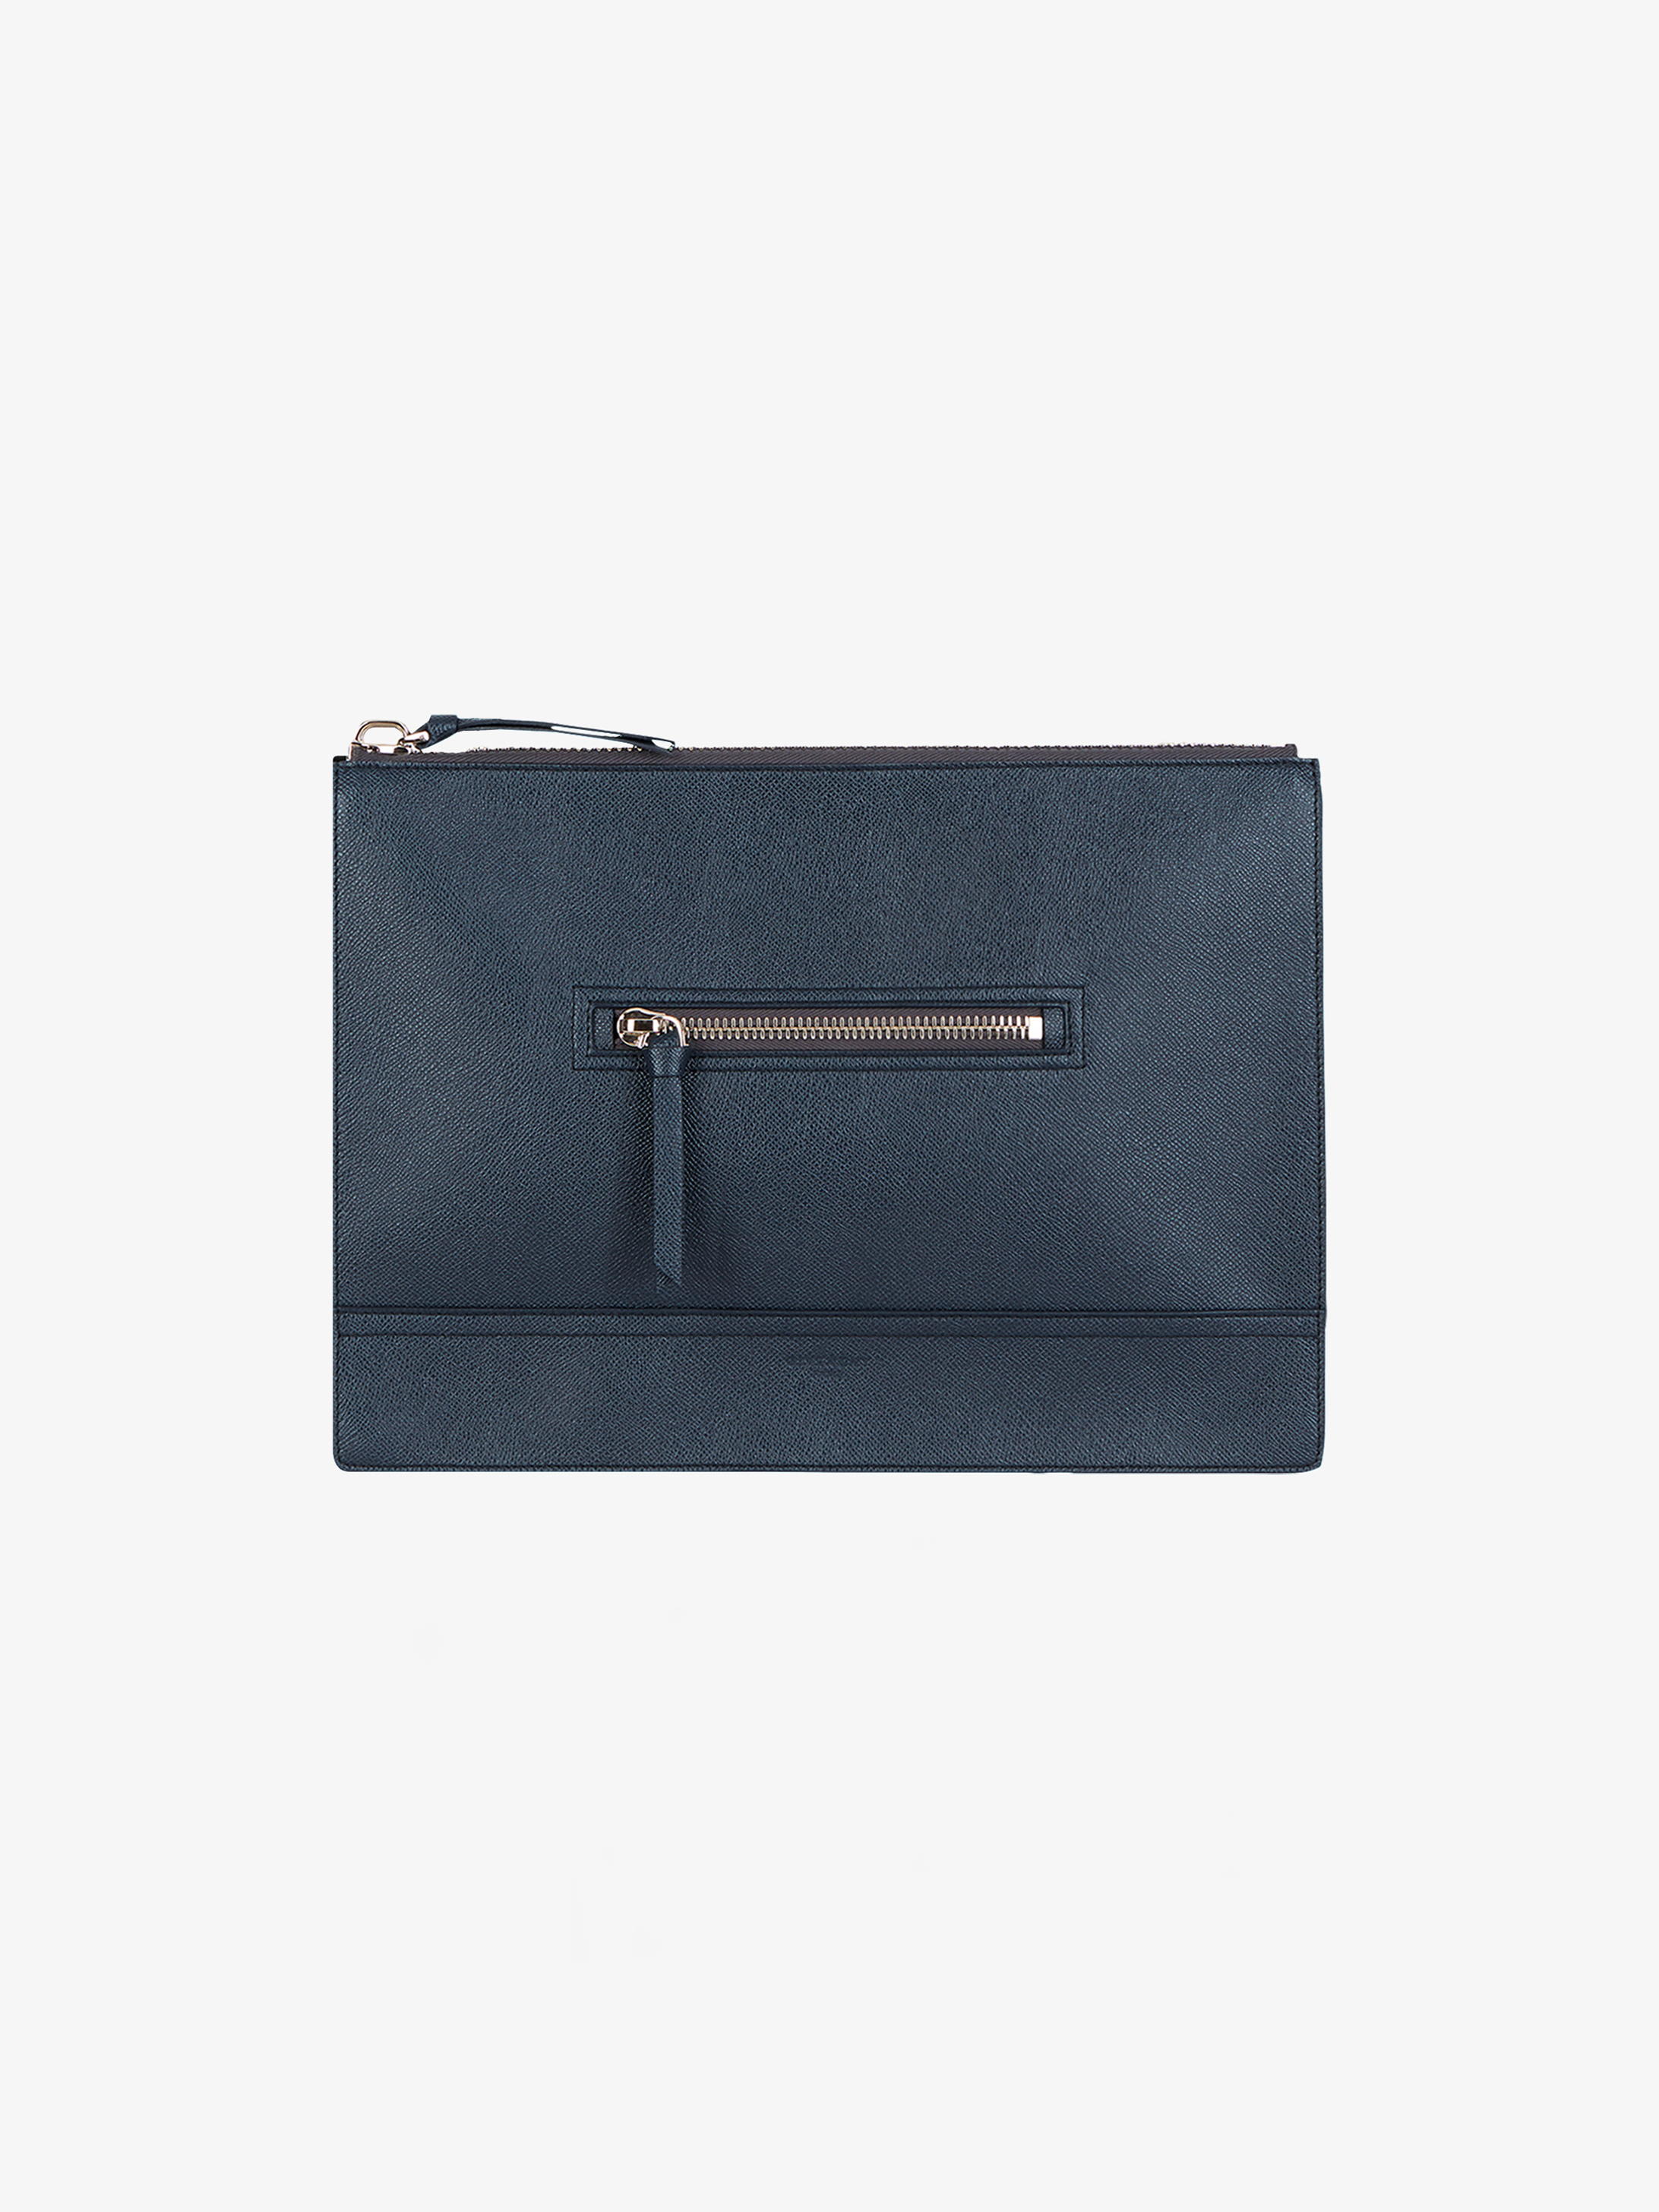 Pandora messenger bag in grained leather